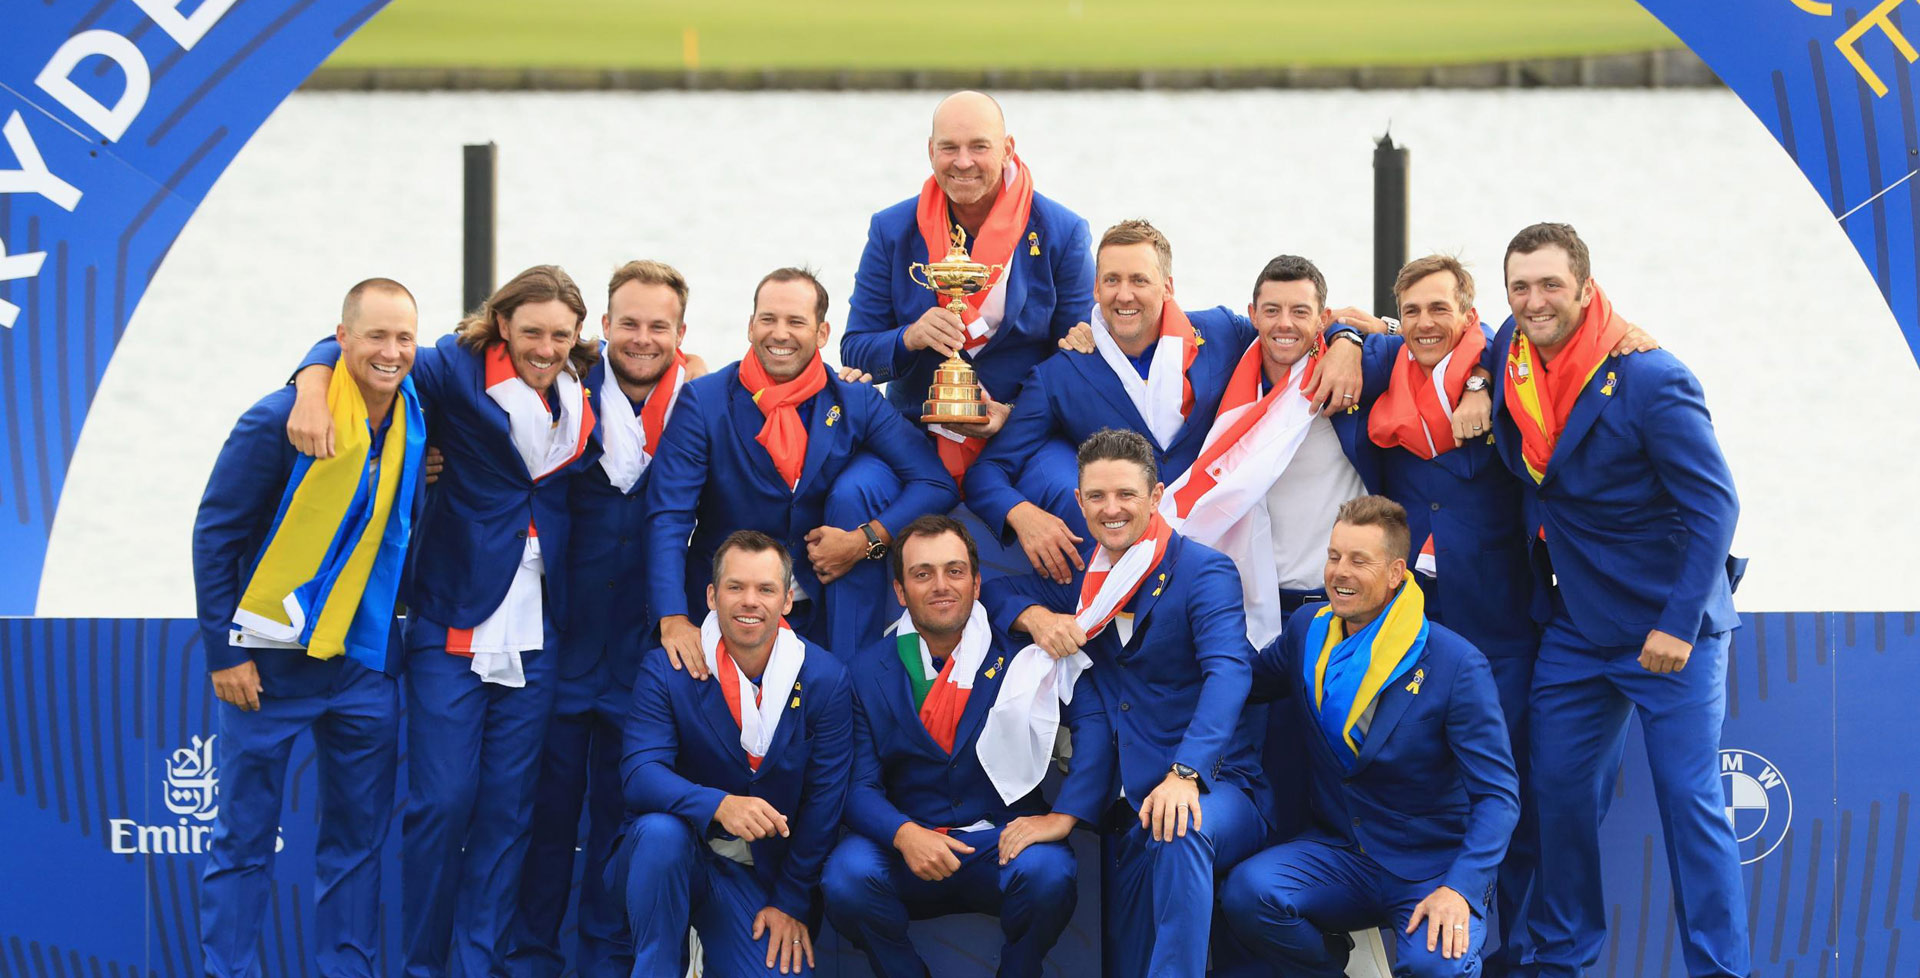 Ryder Cup - Go Europe